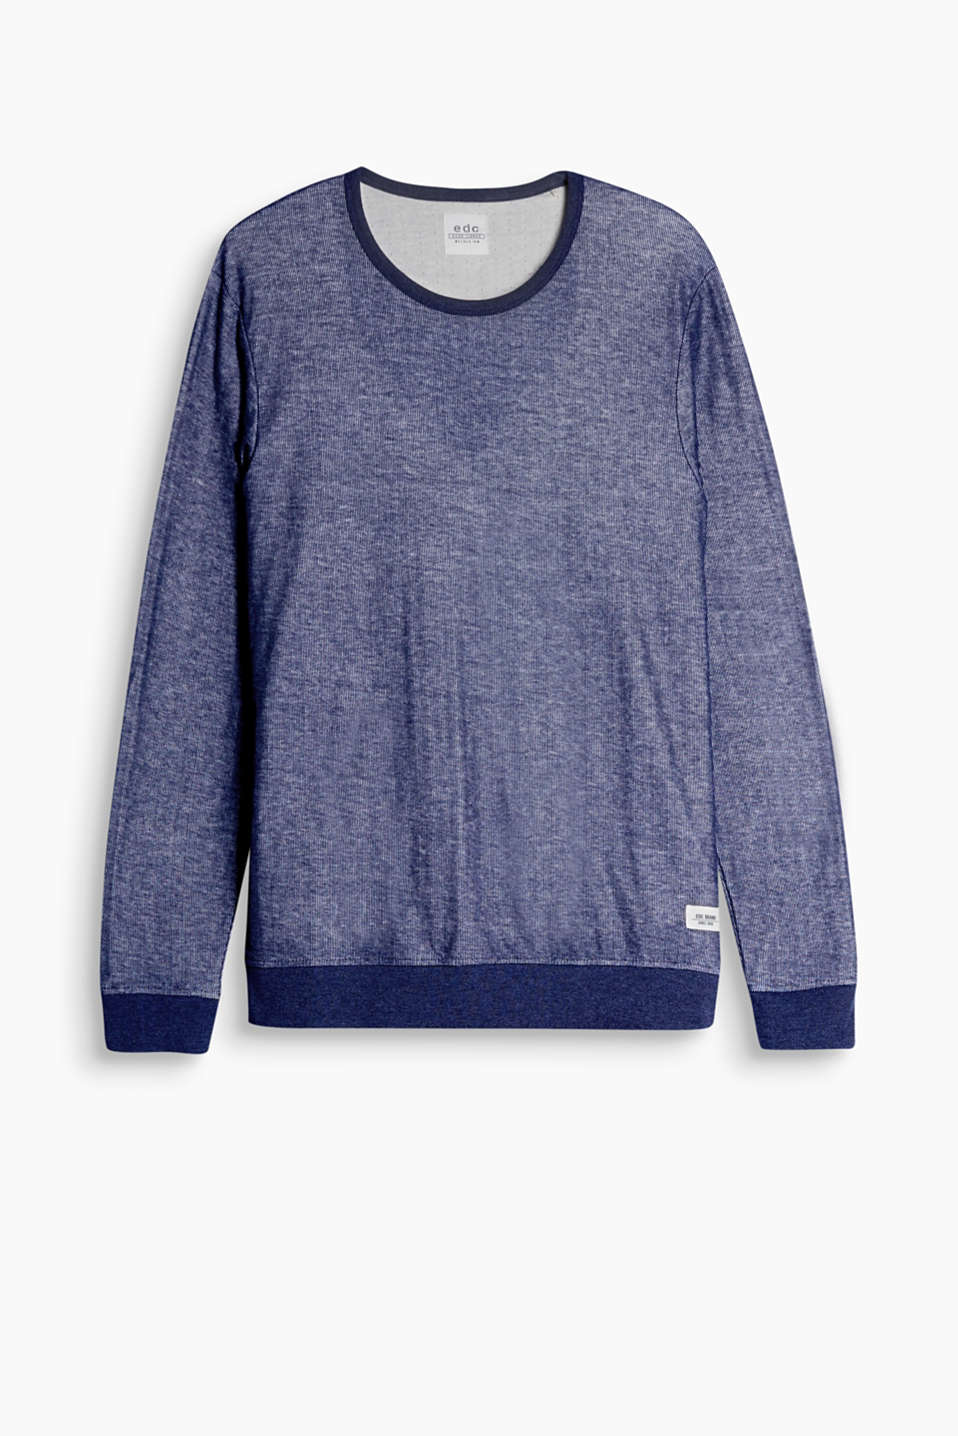 A fashion essential: sporty long sleeve top in ribbed jersey!